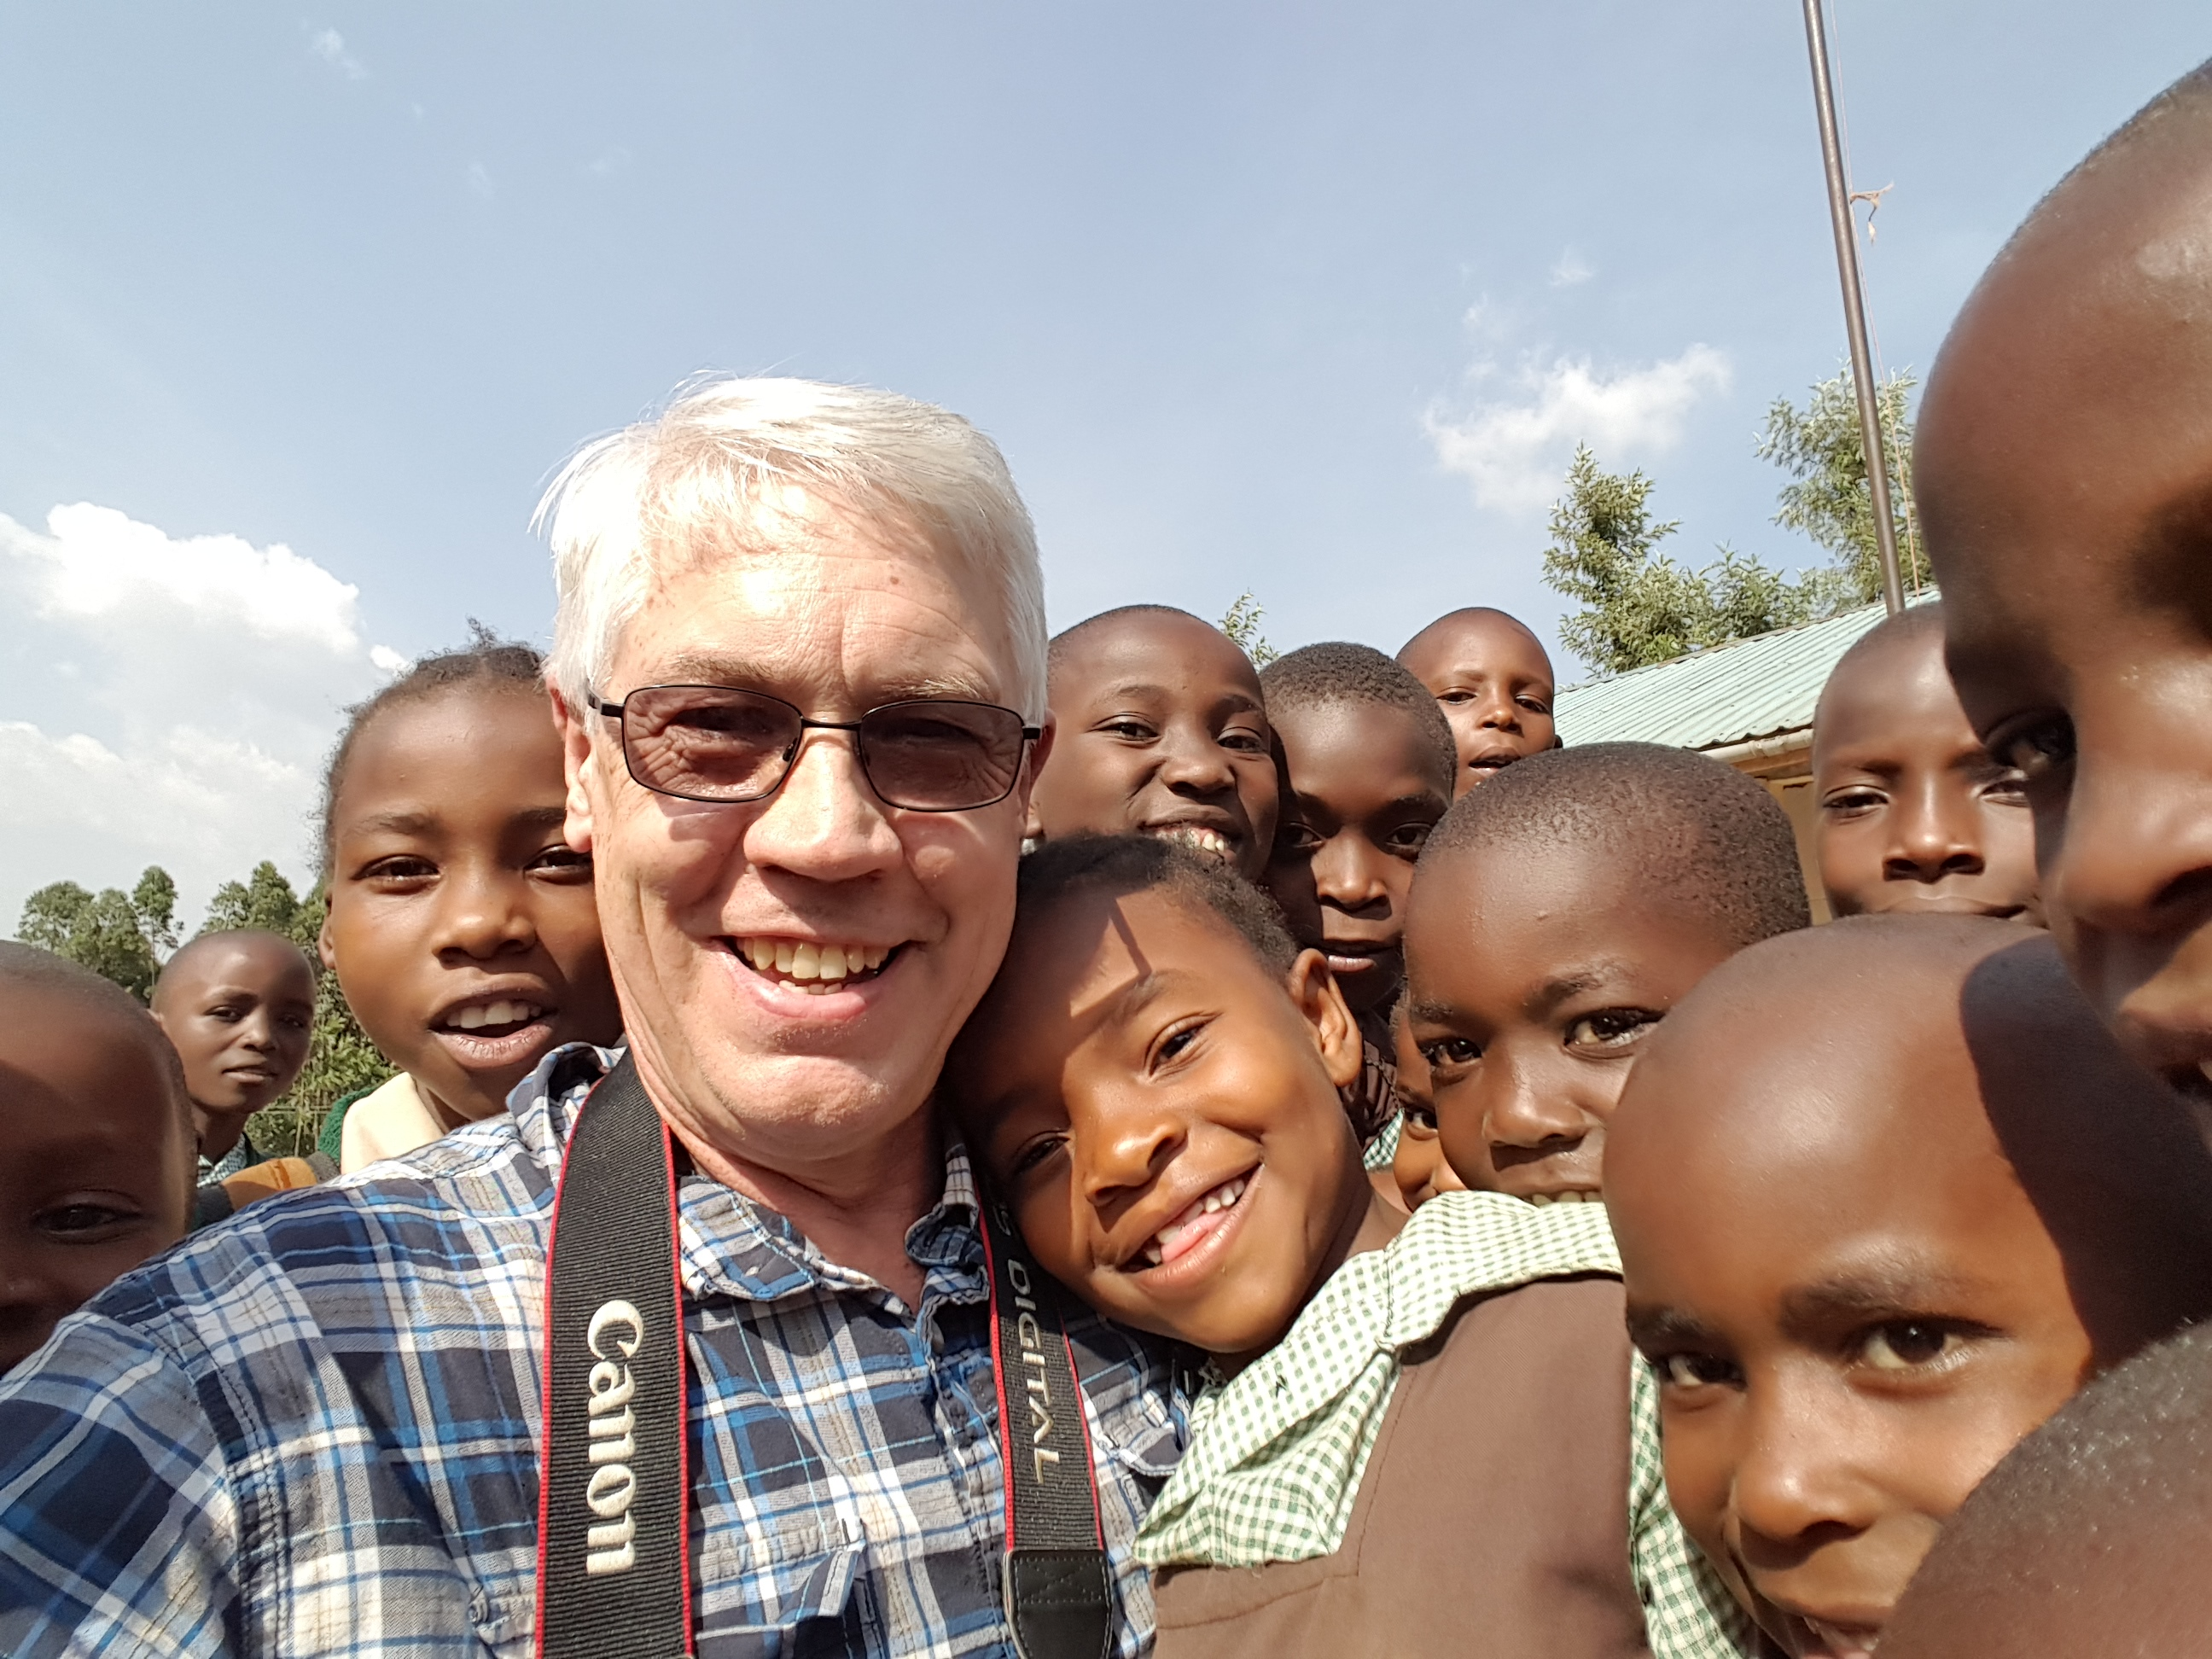 dan haskins with kids in kenya